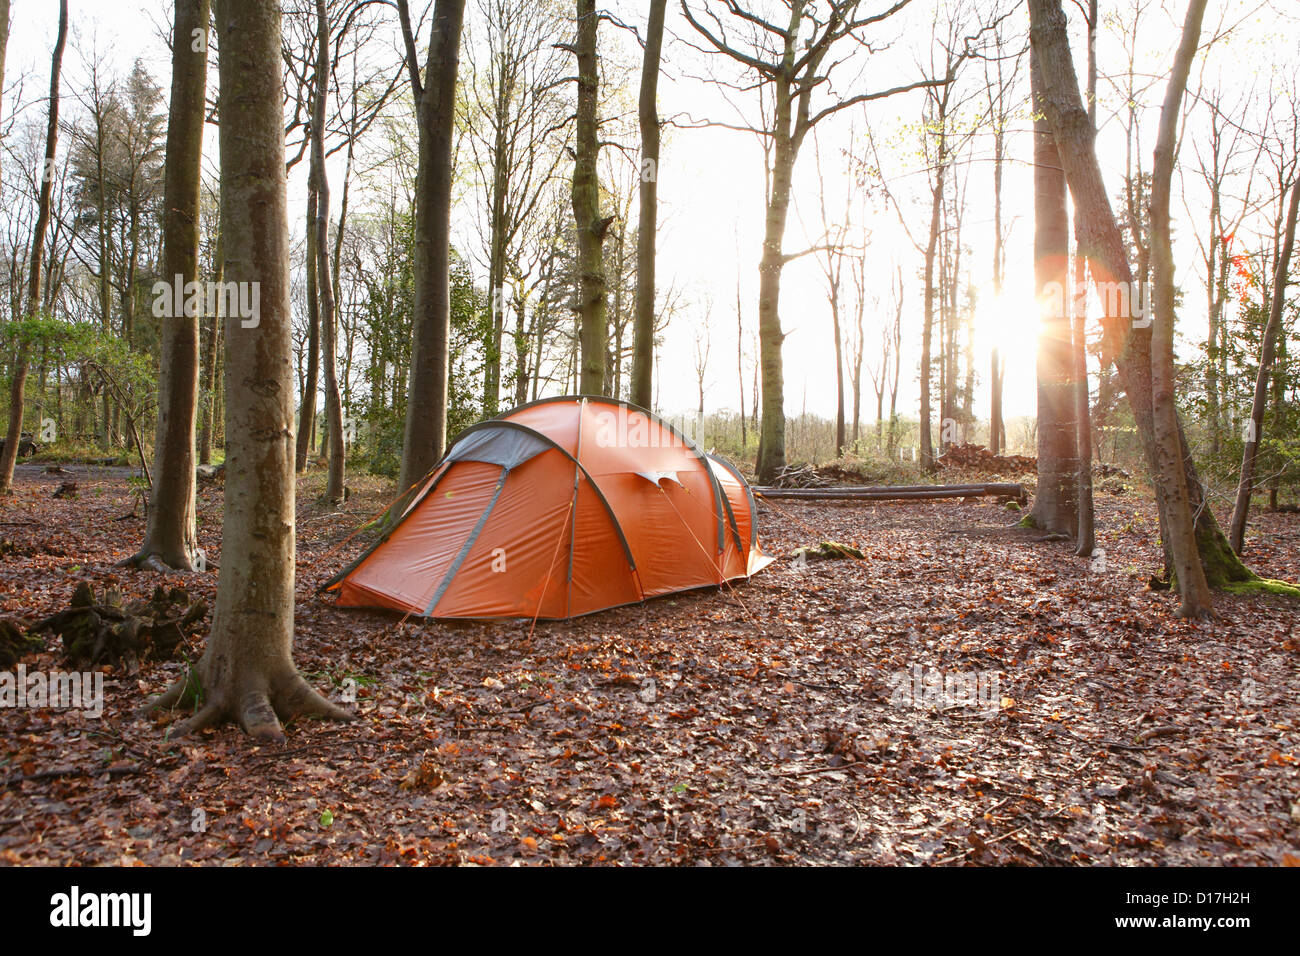 Tent pitched in autumn forest - Stock Image